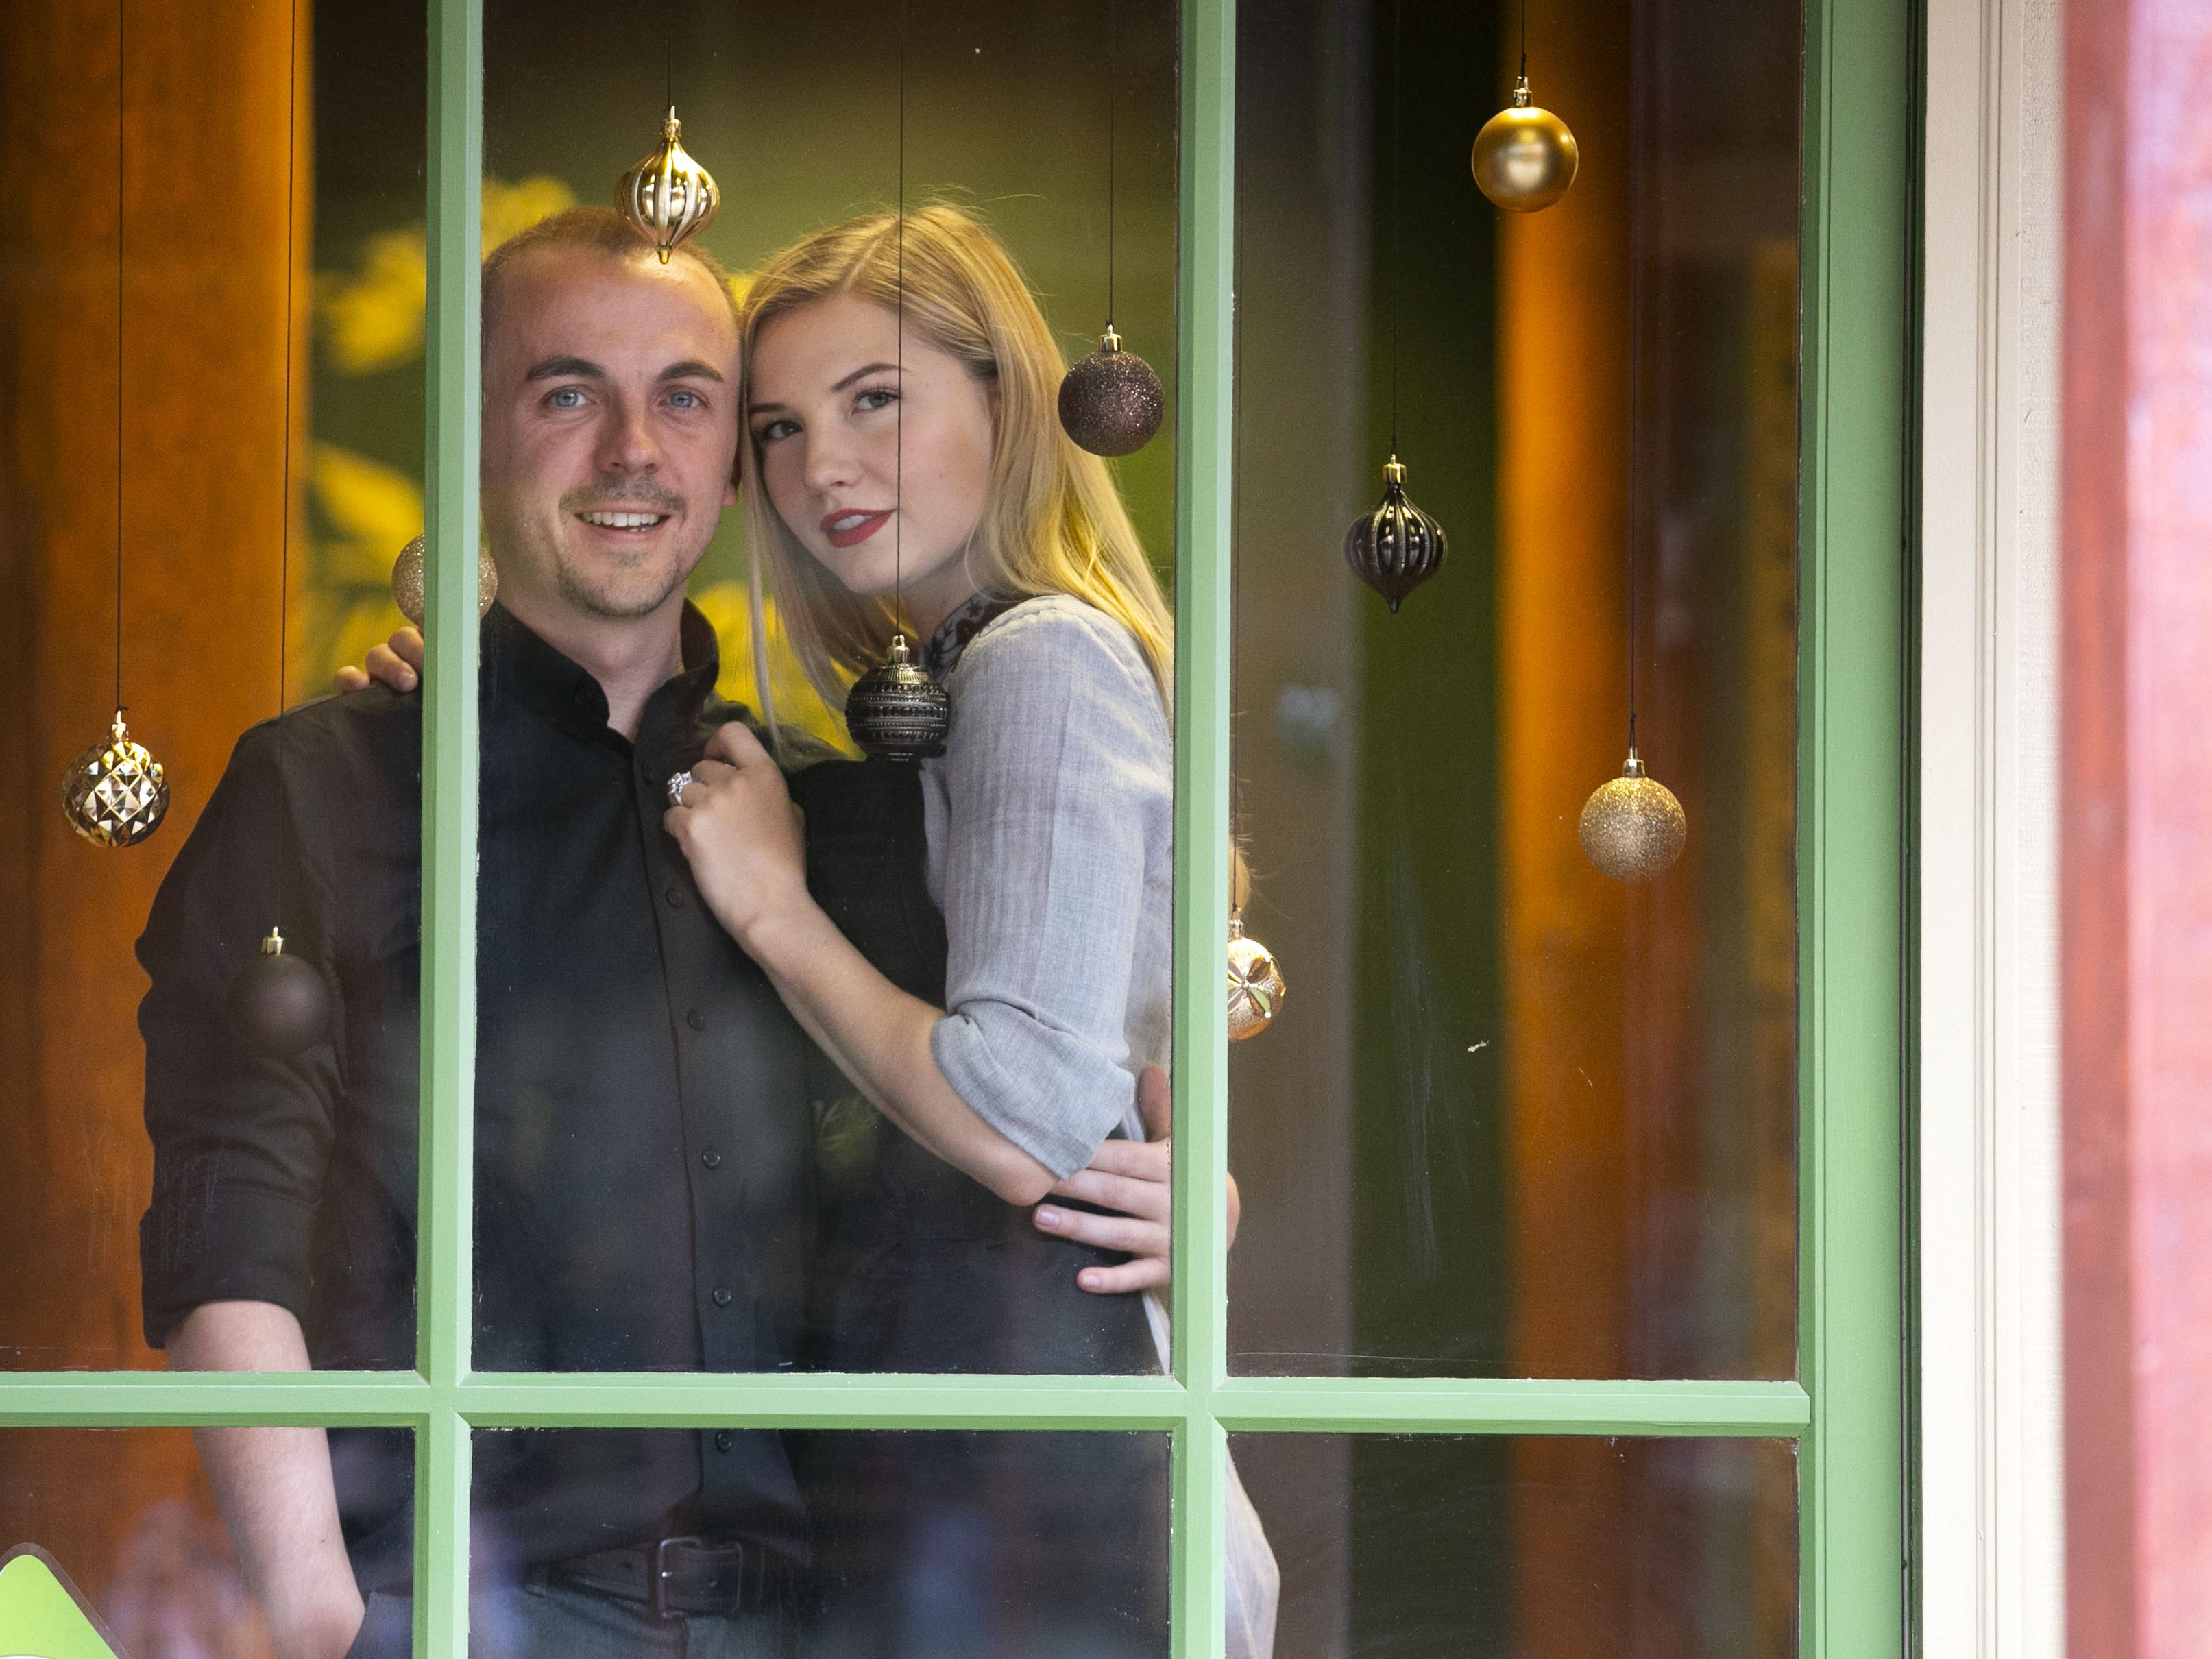 Child actor Frankie Muniz and his fiance Paige Price own and run Outrageous Olive Oils & Vinegars in Old Town Scottsdale on Tuesday, Dec. 11, 2018.